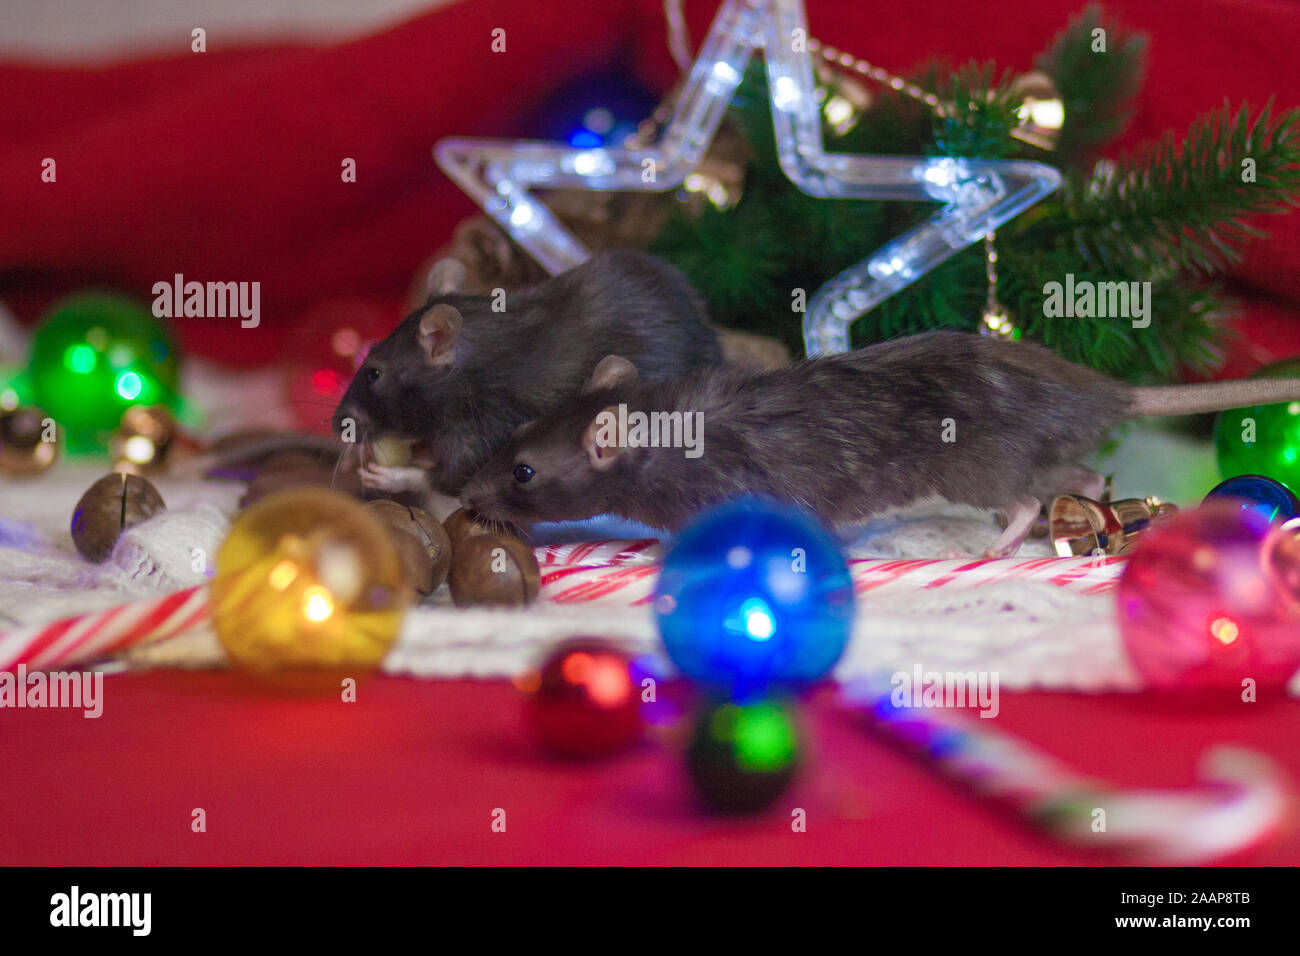 Thelights Of Christmas 2020 Rats are gray and Christmas star. Celebrates Christmas and New